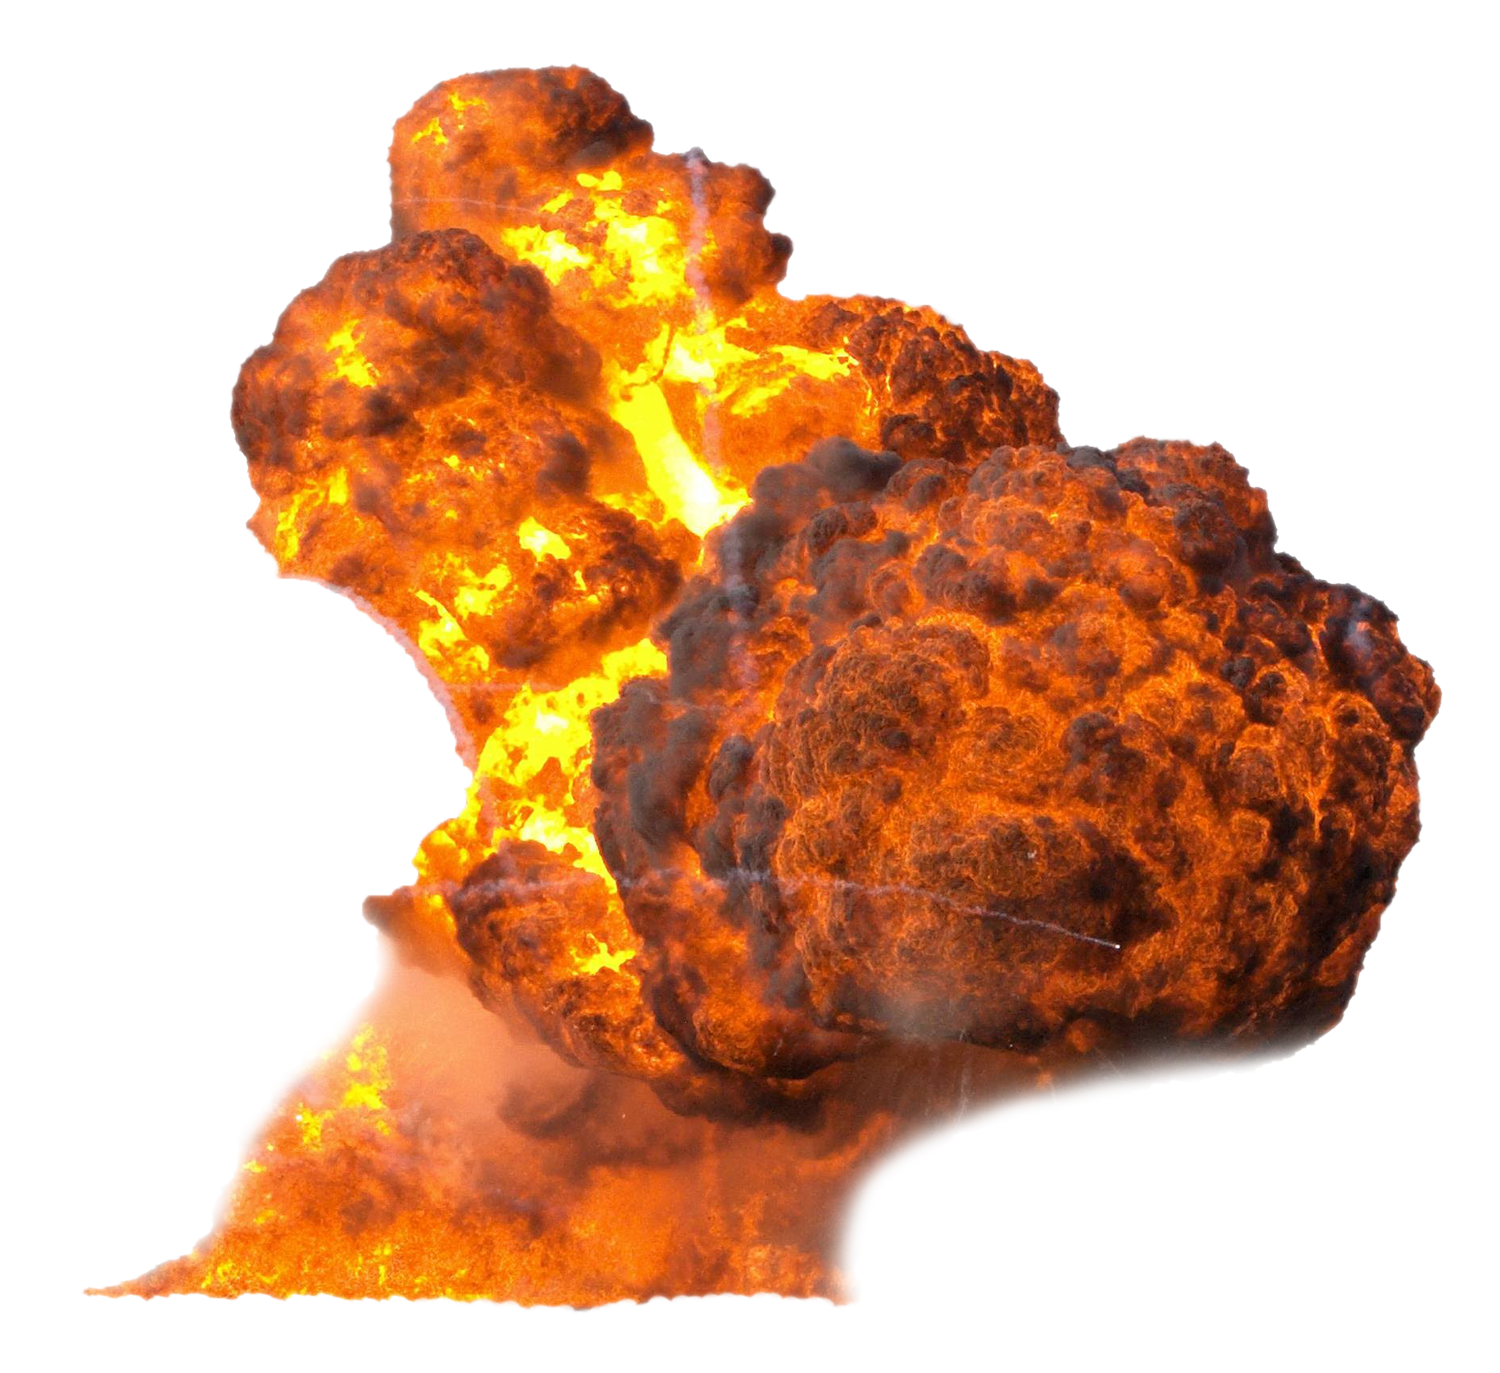 Smoke and fire png. Explosion image purepng free